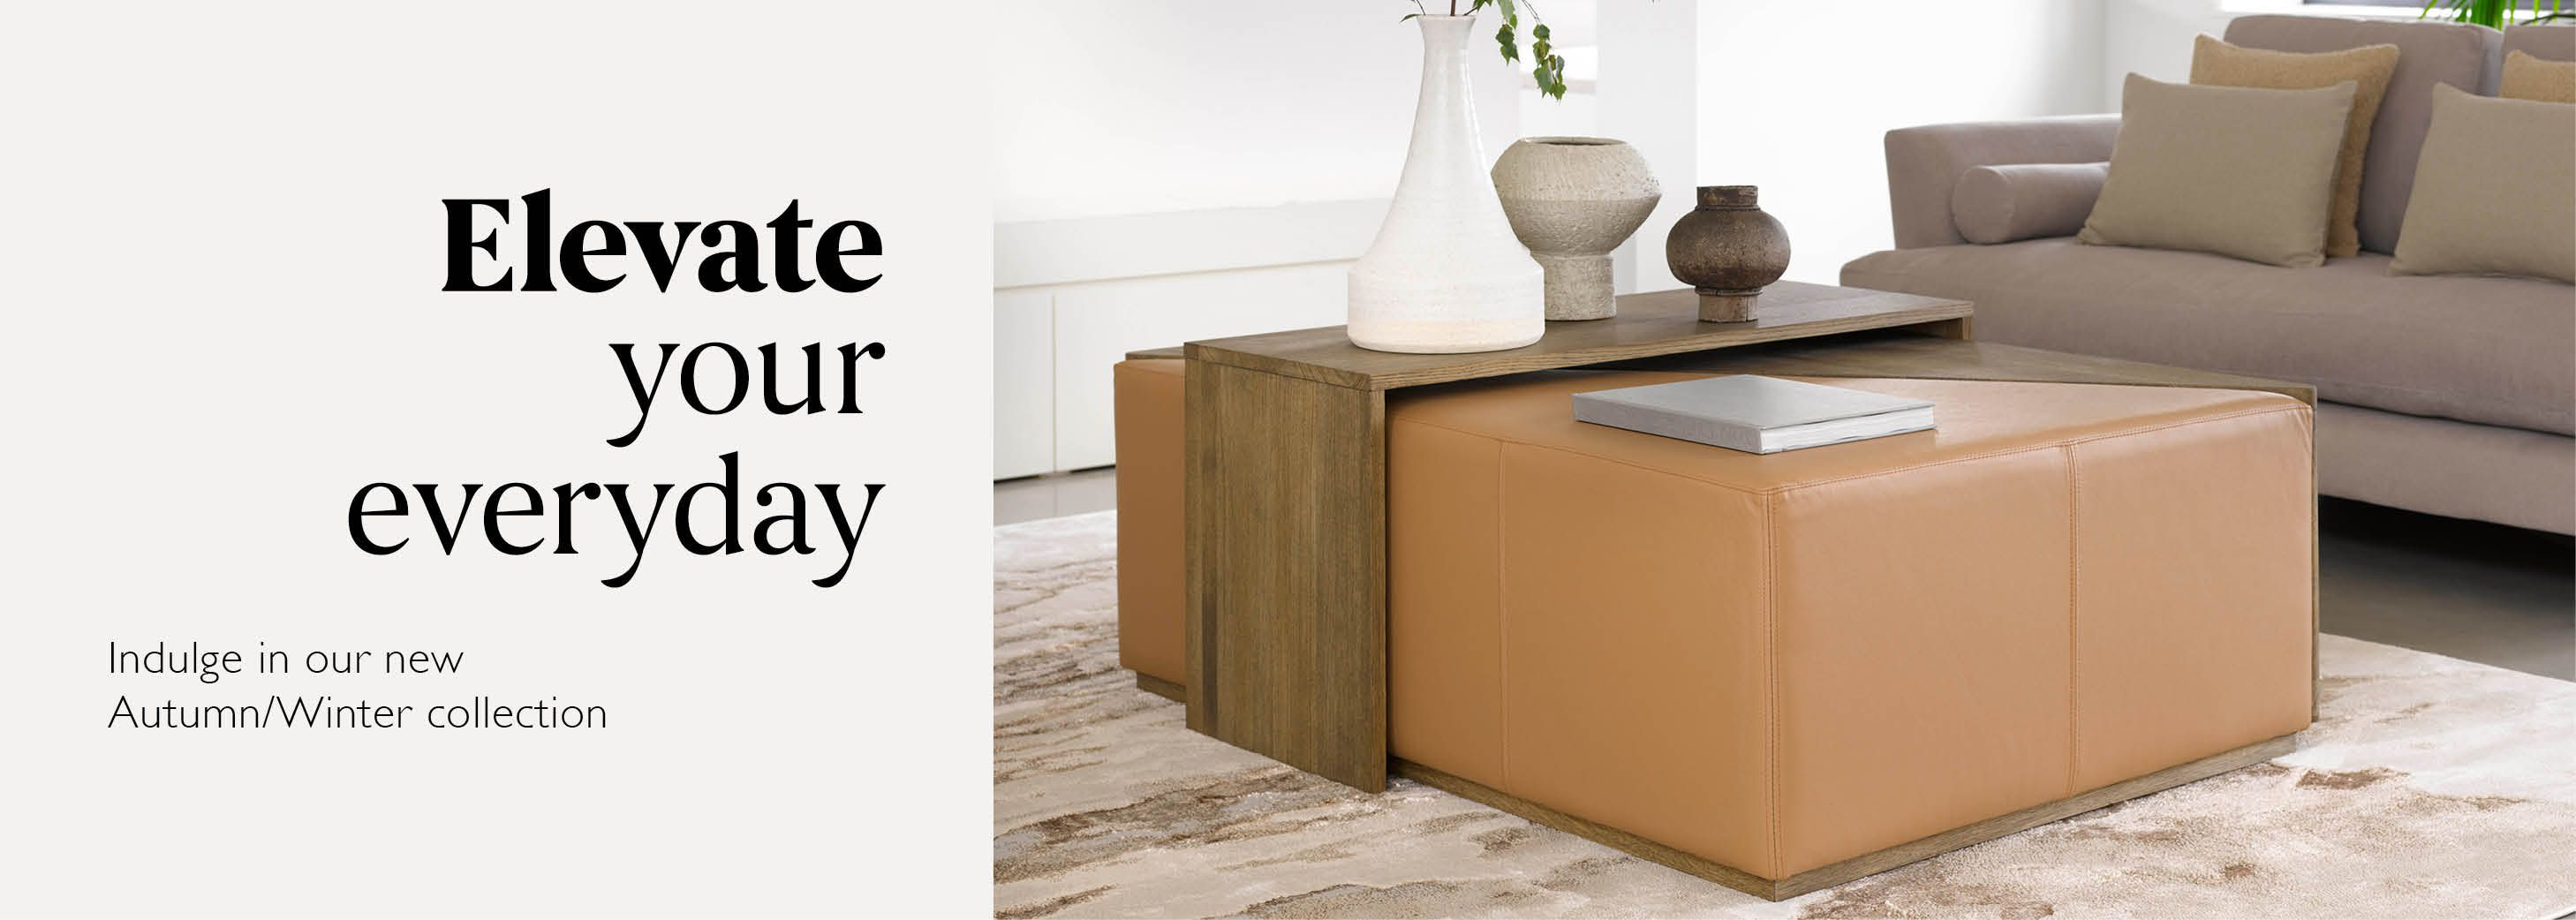 Elevate your everyday - Shop Accent Tables